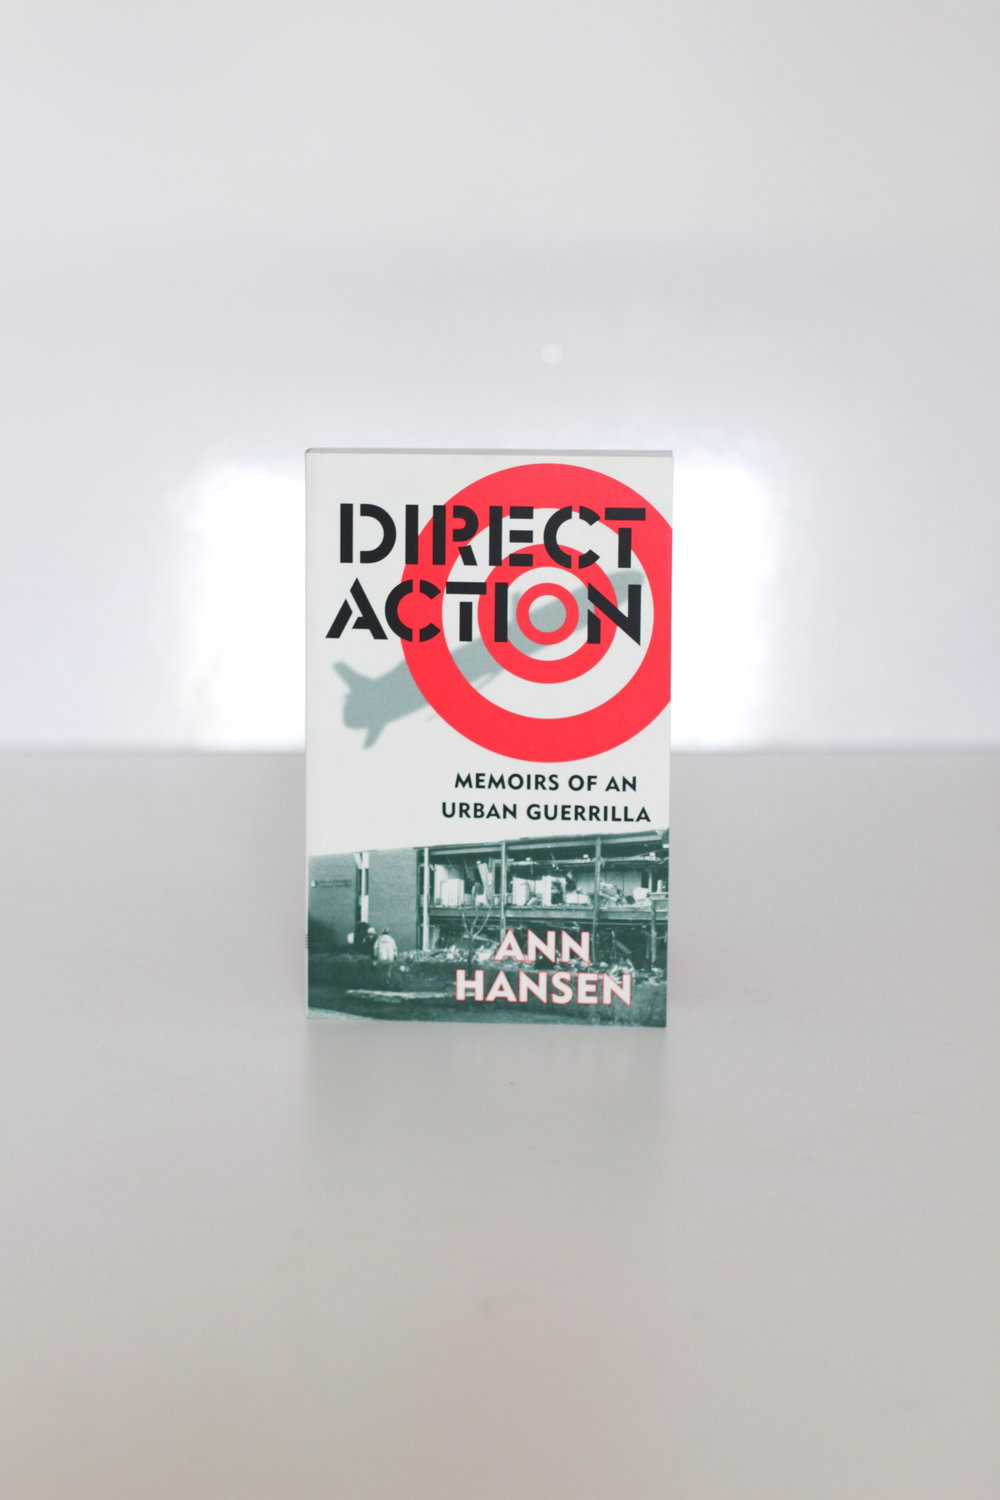 Direct Action: Memoirs of an Urban Guerrilla – Ann Hansen